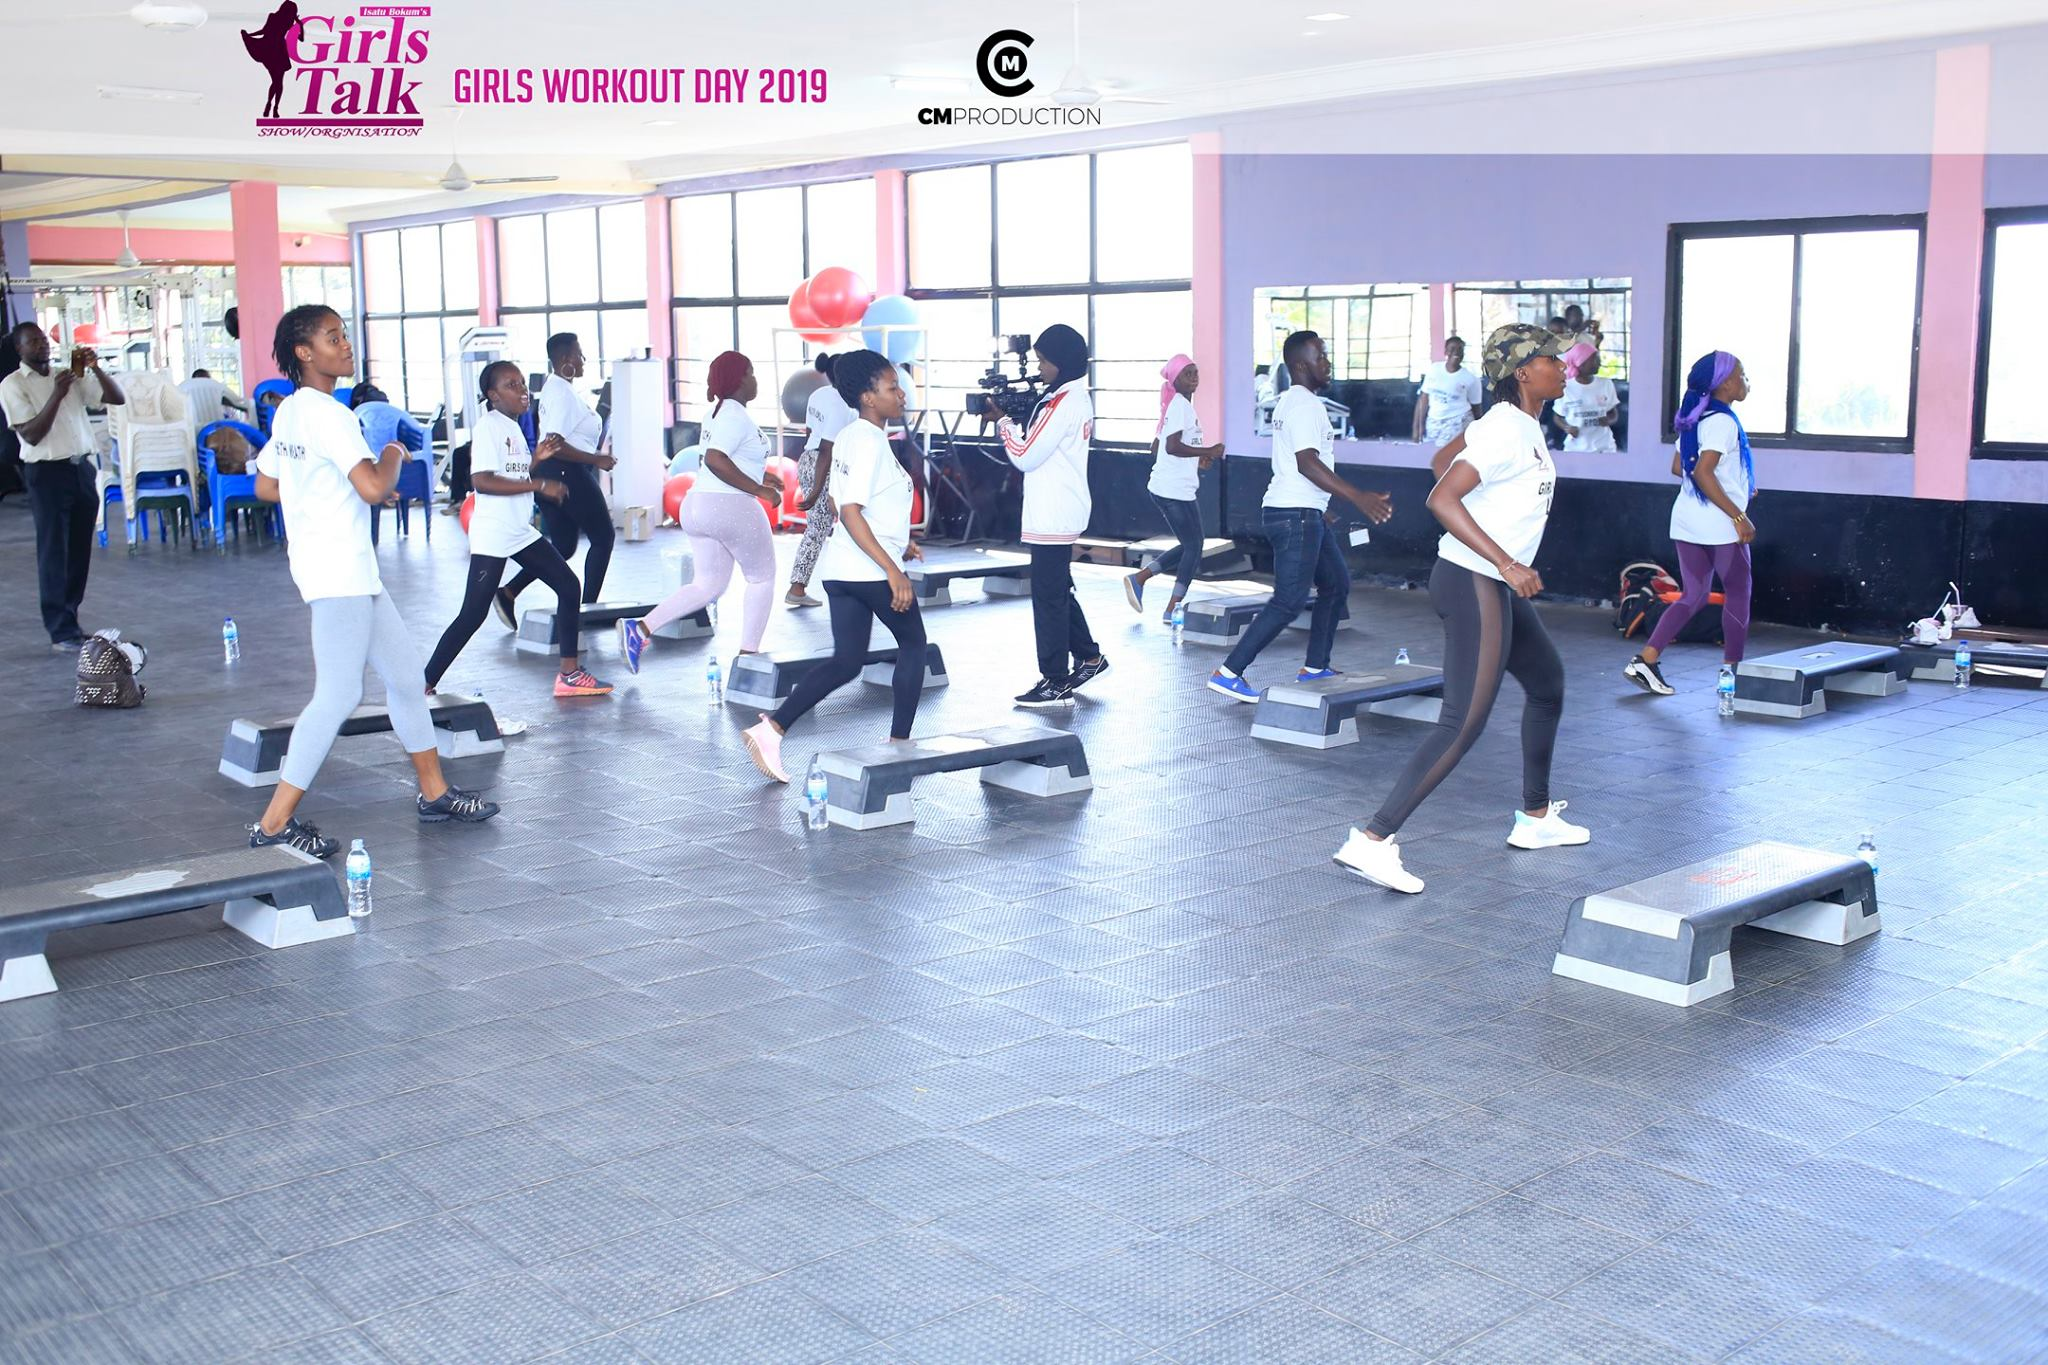 In 2019, we organised a Girls Workout Day, to break the myth that women only went to the gym to look for partners. We had an amazing trainer who taught the girls basic fitness strategies that they could do at home. There were only 15 women that first year, but it tripled to 50 by the next year.